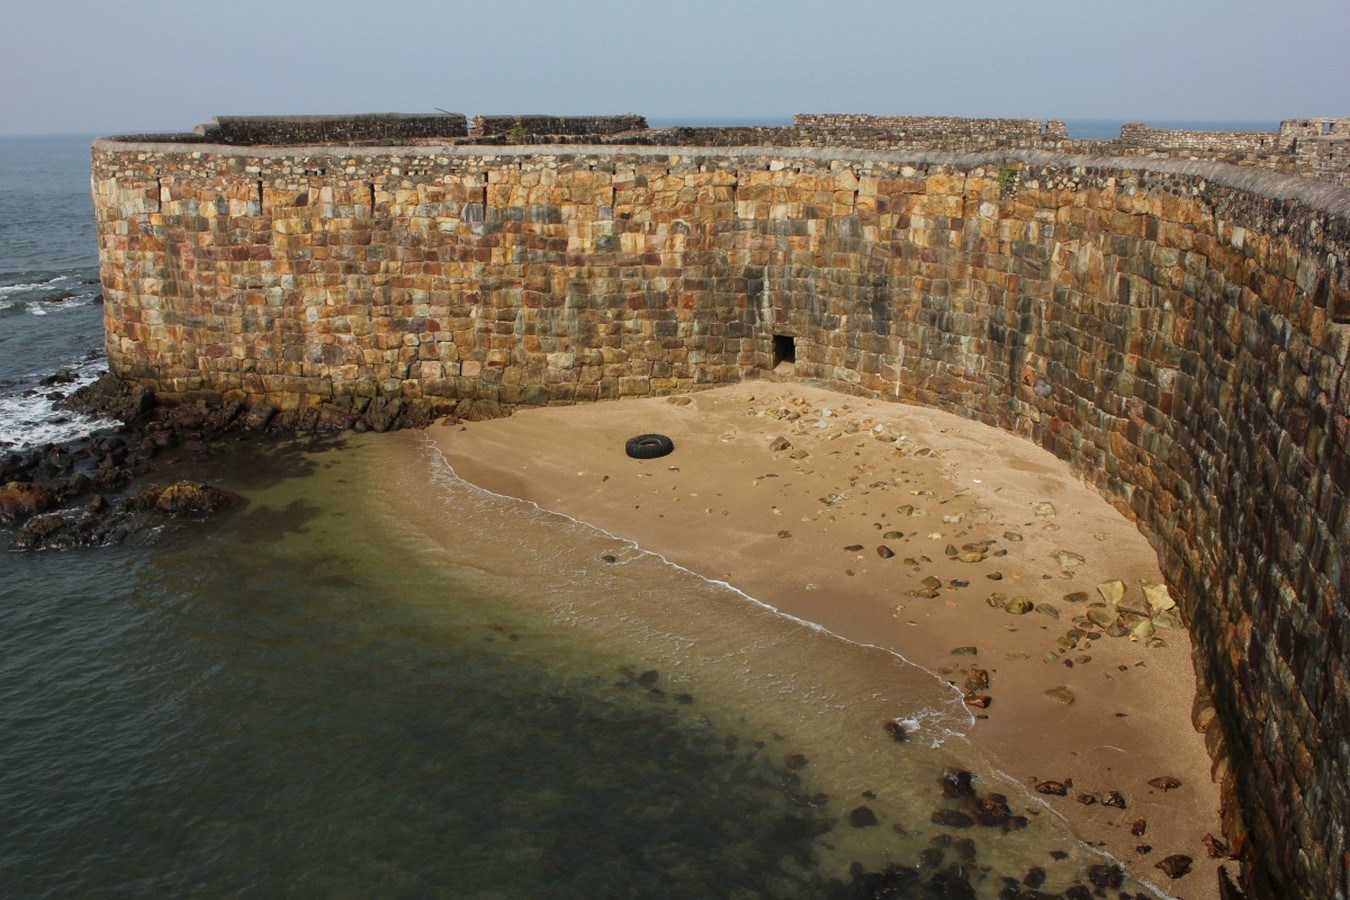 Sindhudurg fort: The 1664 architecture marvel constructed on an island - Sheet5